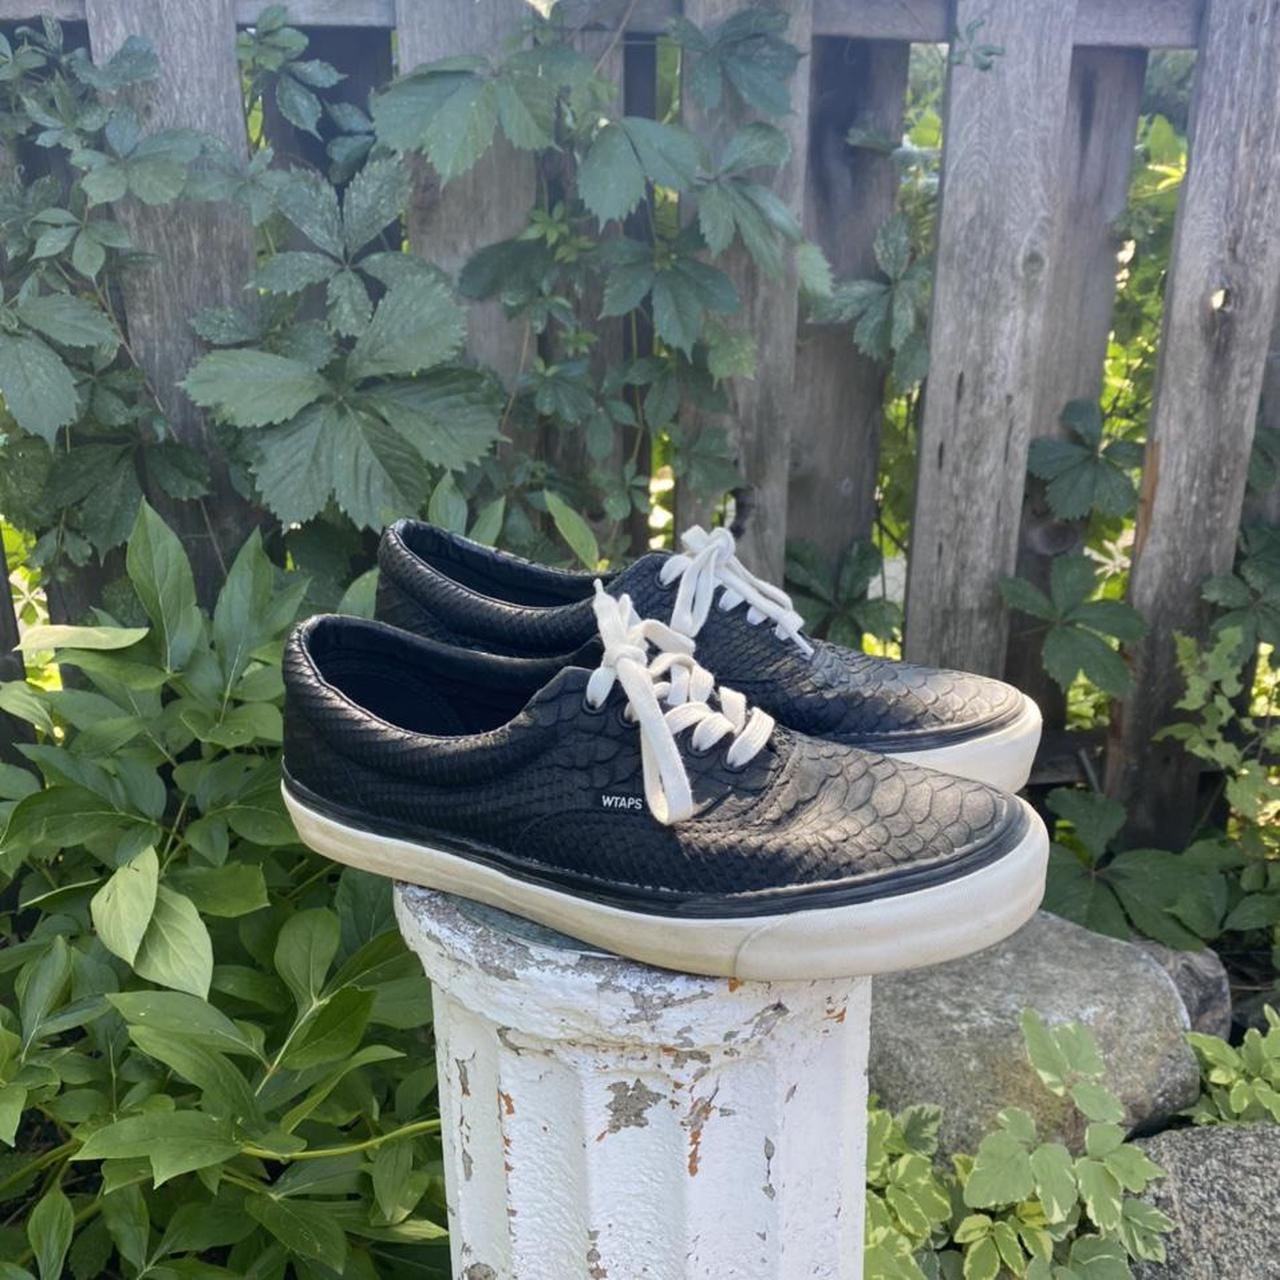 Product Image 1 - Clean pair of WTAPS x